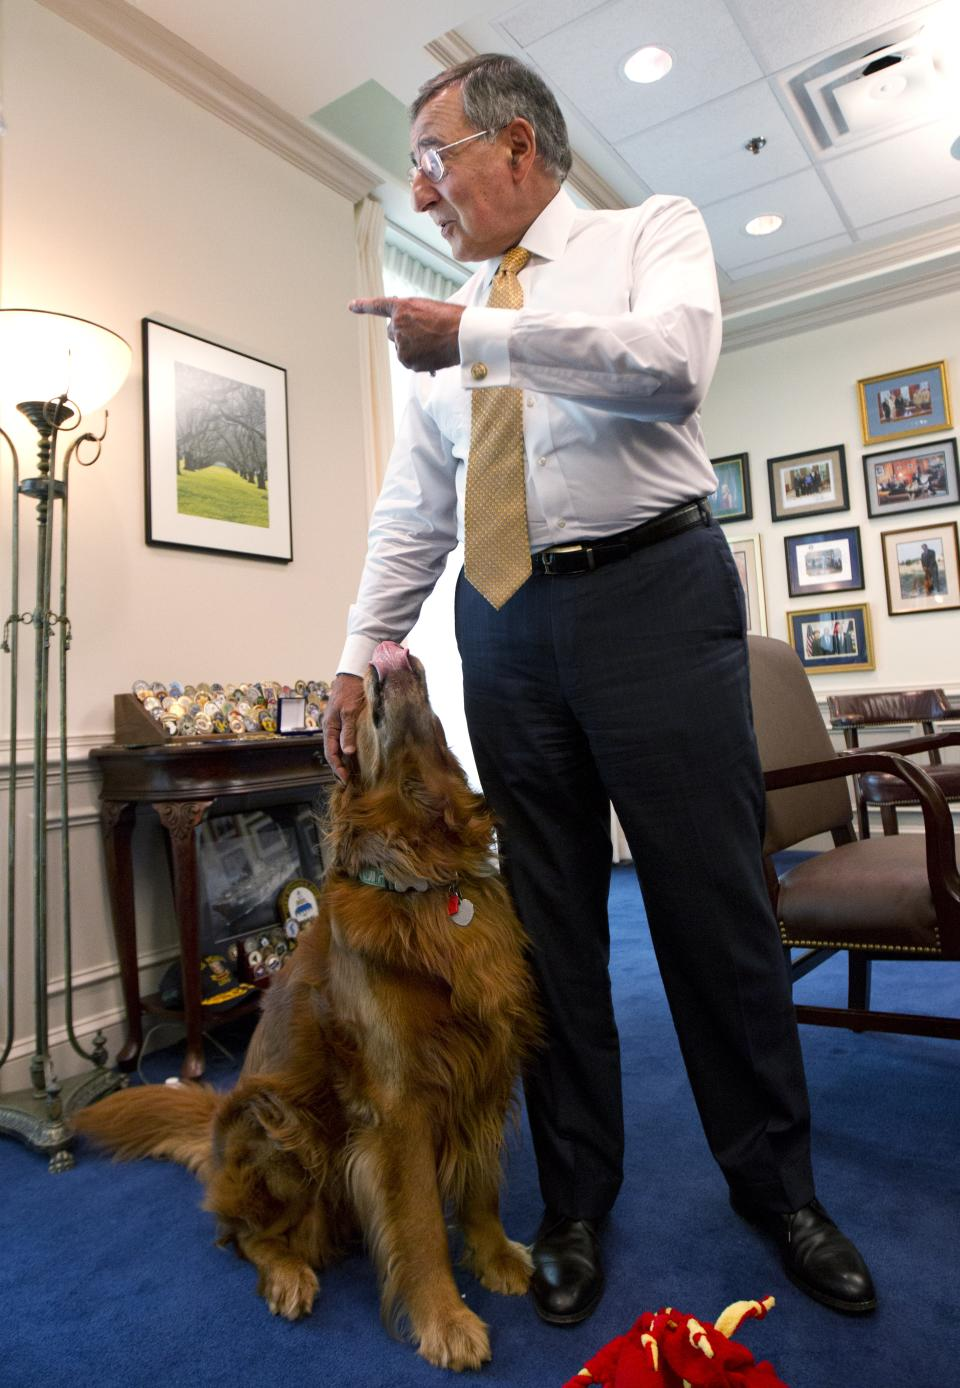 Defense Secretary Leon Panetta, with his golden retriever dog Bravo, during an interview with The Associated Press, Monday, Aug. 13, 2012, at the Pentagon.   (AP Photo Manuel Balce Ceneta)